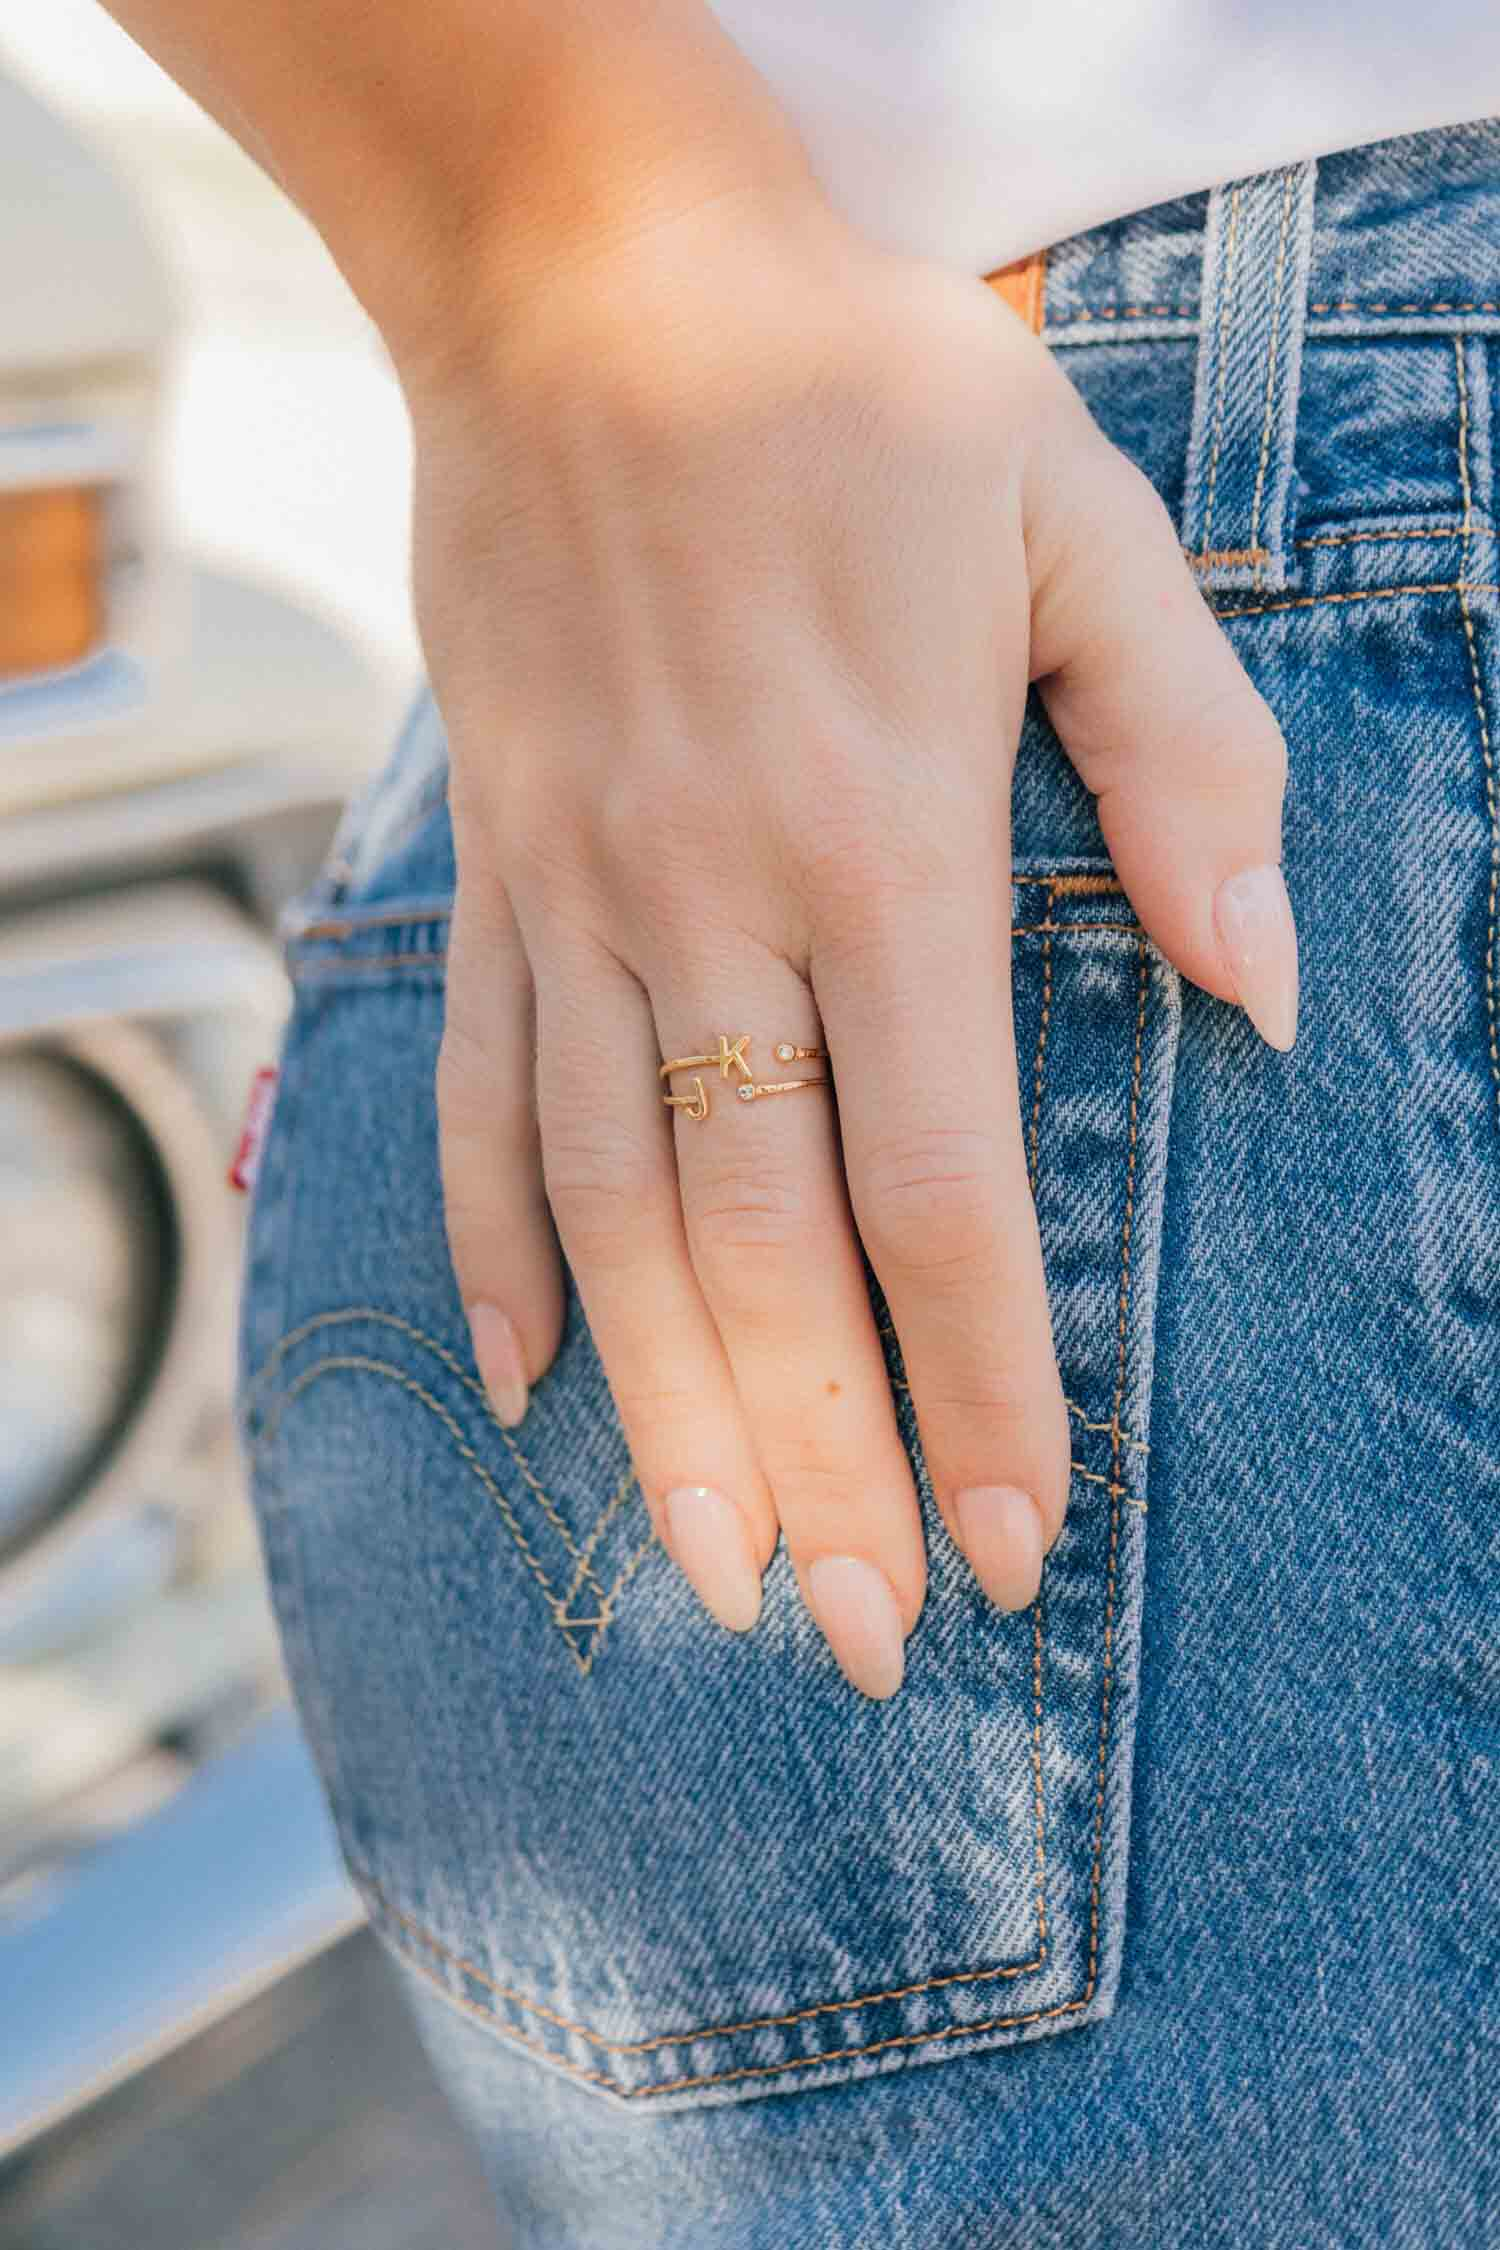 Woman's hand on jeans wearing Katie Dean Jewelry Initial Ring